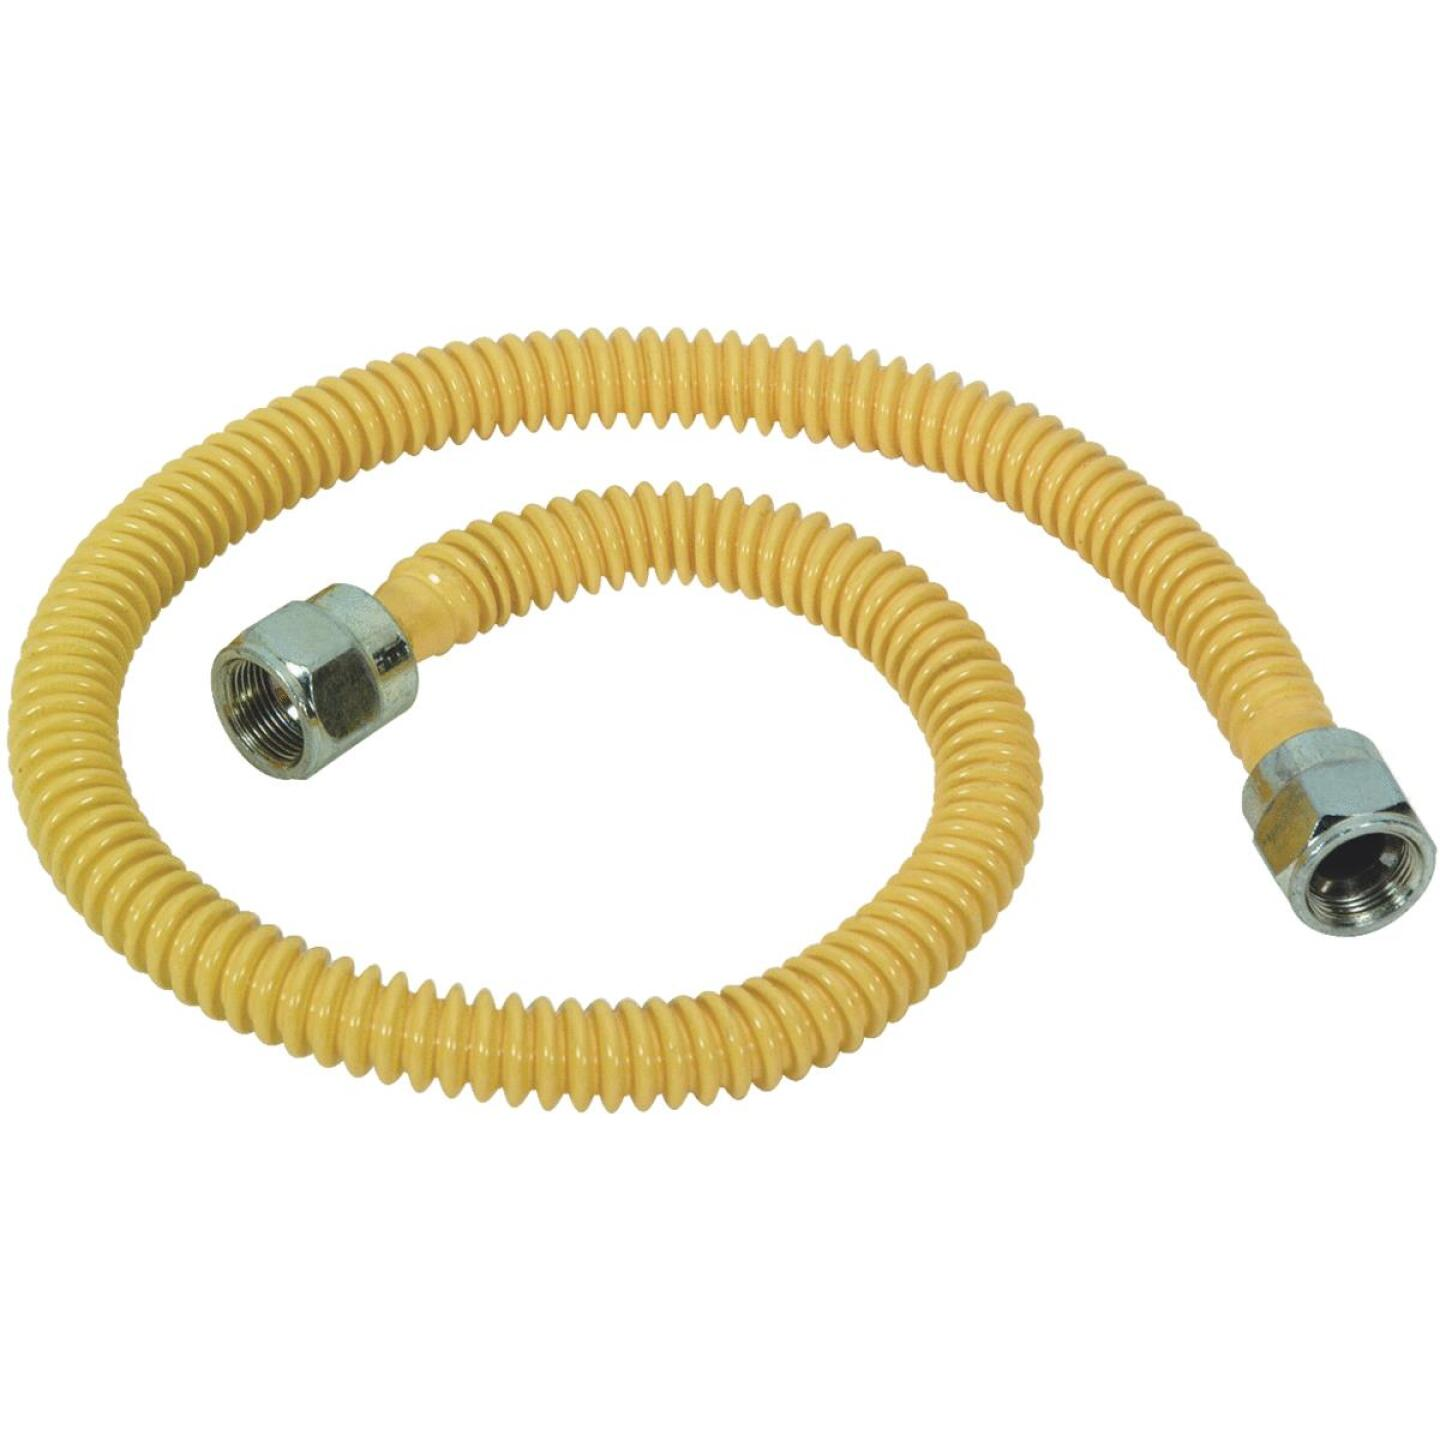 Watts 3/8 In. x 46 In. Flexible Gas Connector Image 1